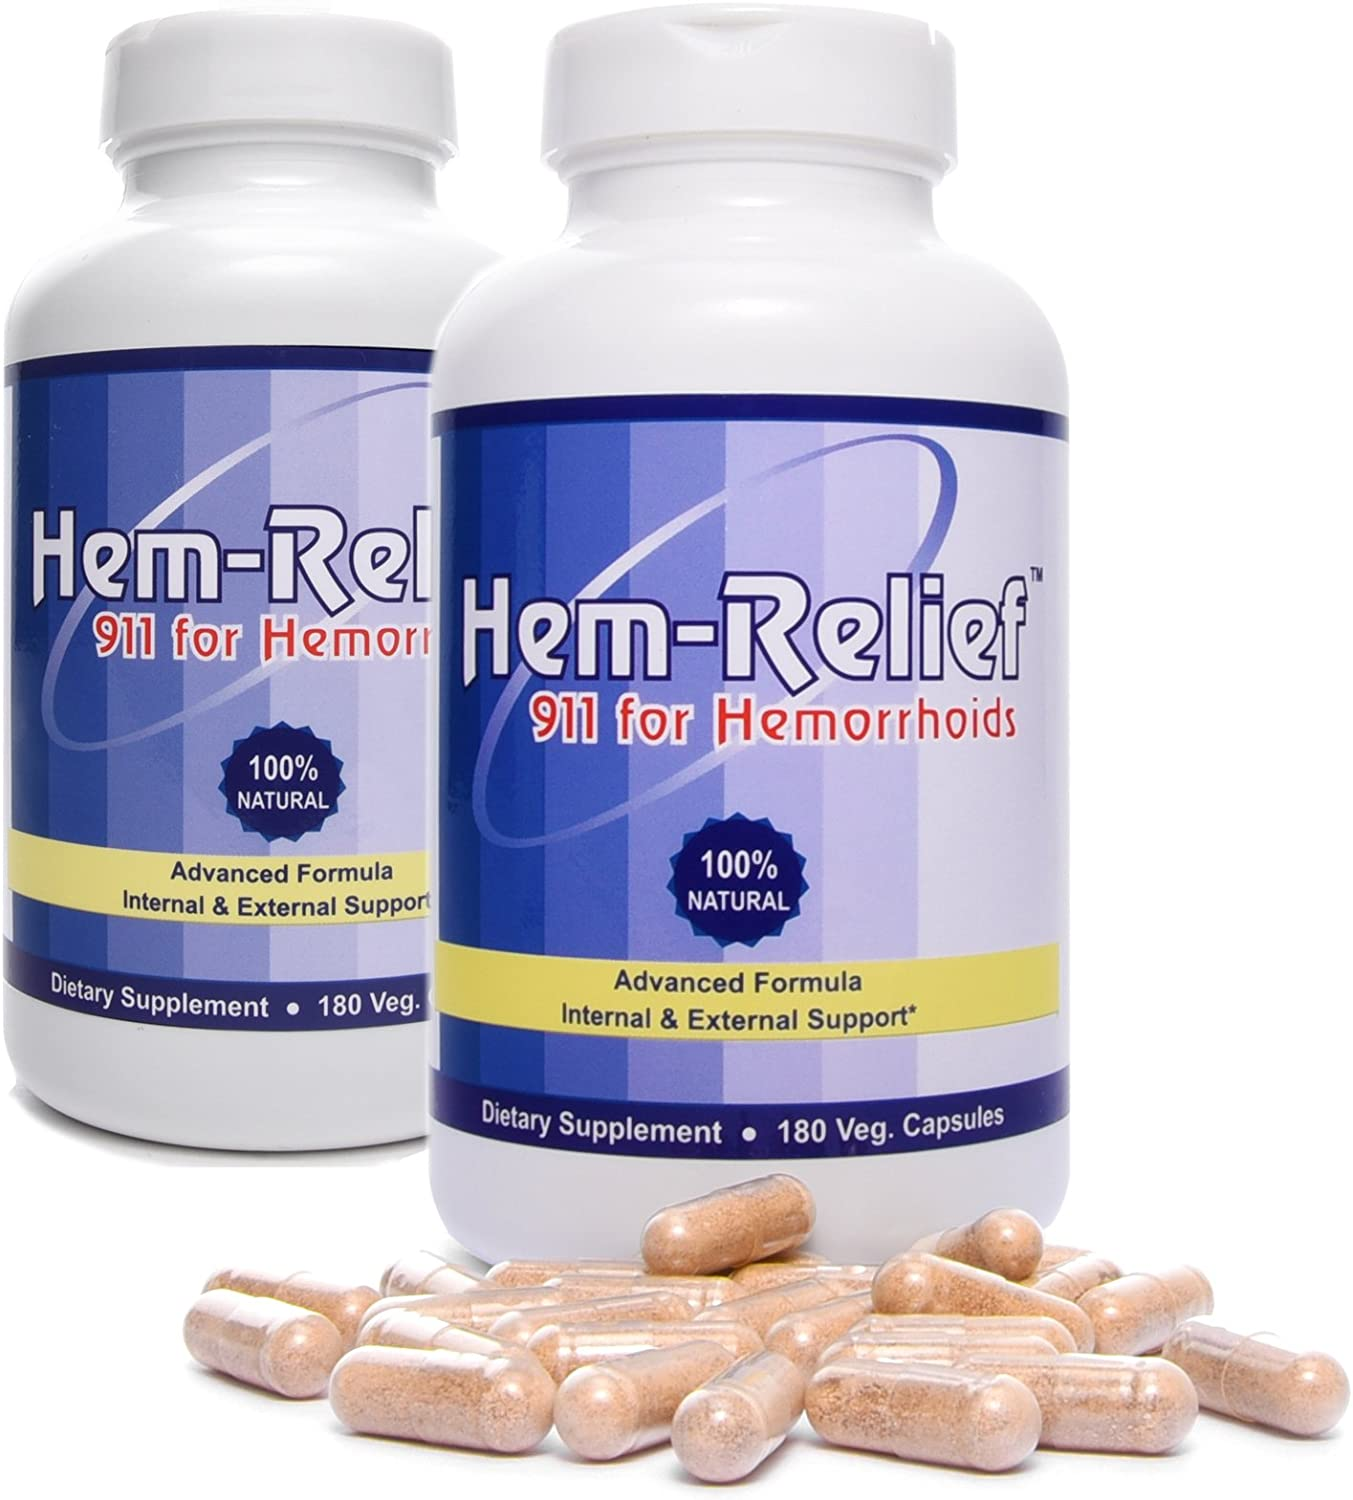 Western Herbal and Nutrition | Hem-Relief 911 for Hemorrhoids | 100% Natural Formula | Helps with Pain, Itching, Burning | Fast Acting Supplement | Internal & External Treatment | 360 Vegetarian Caps: Health & Personal Care